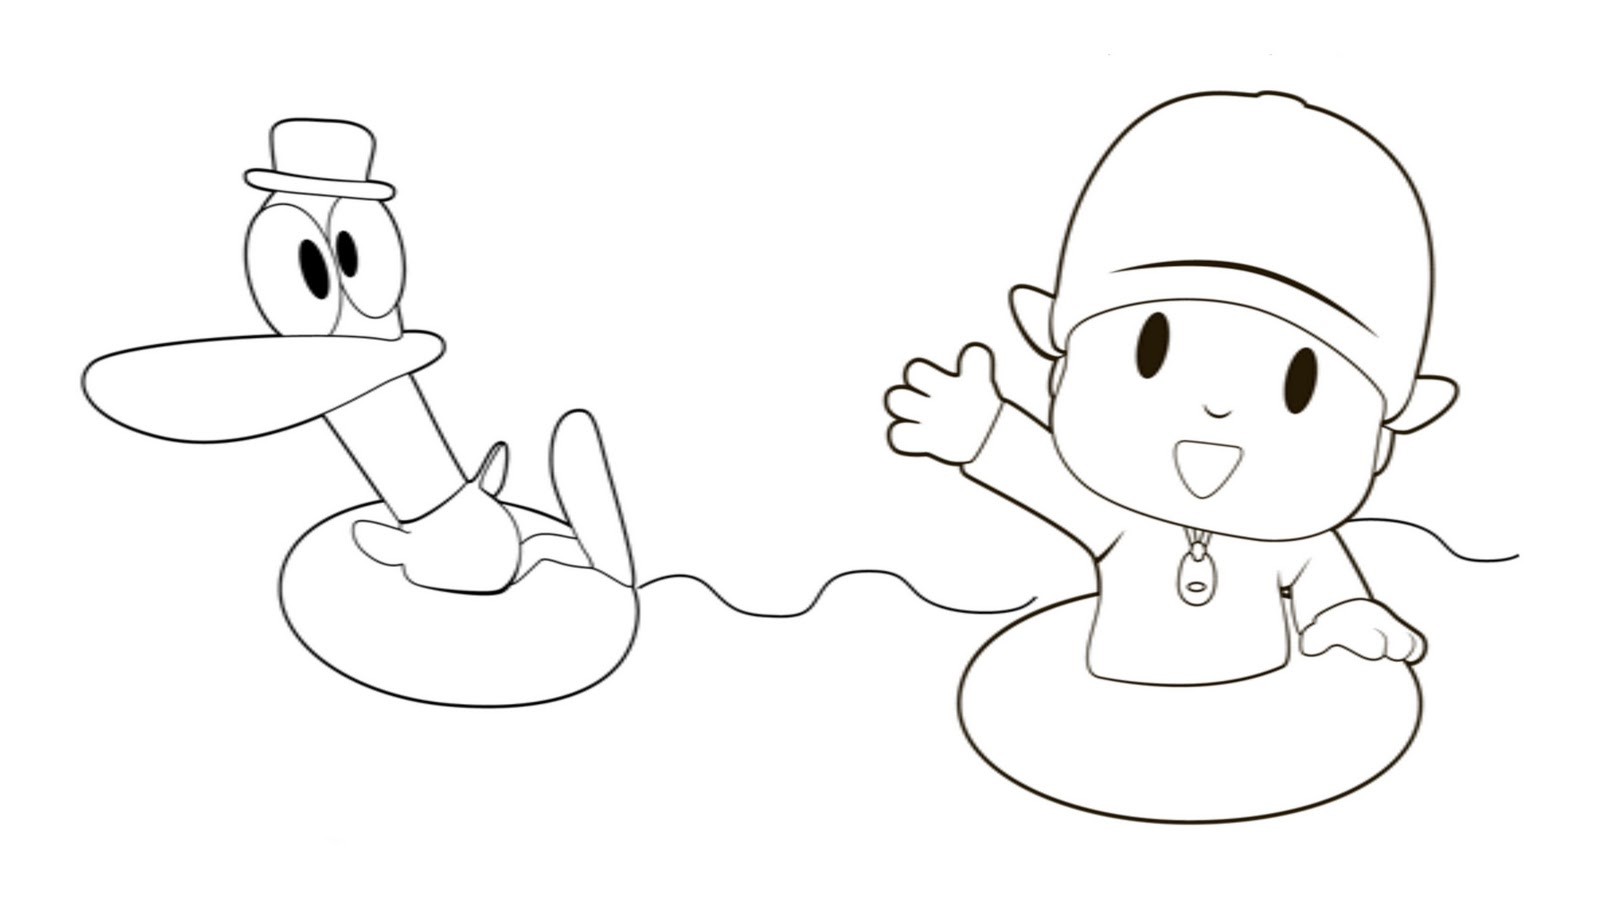 Pocoyo Pginas Para Colorear  Best Coloring Pages For Kids